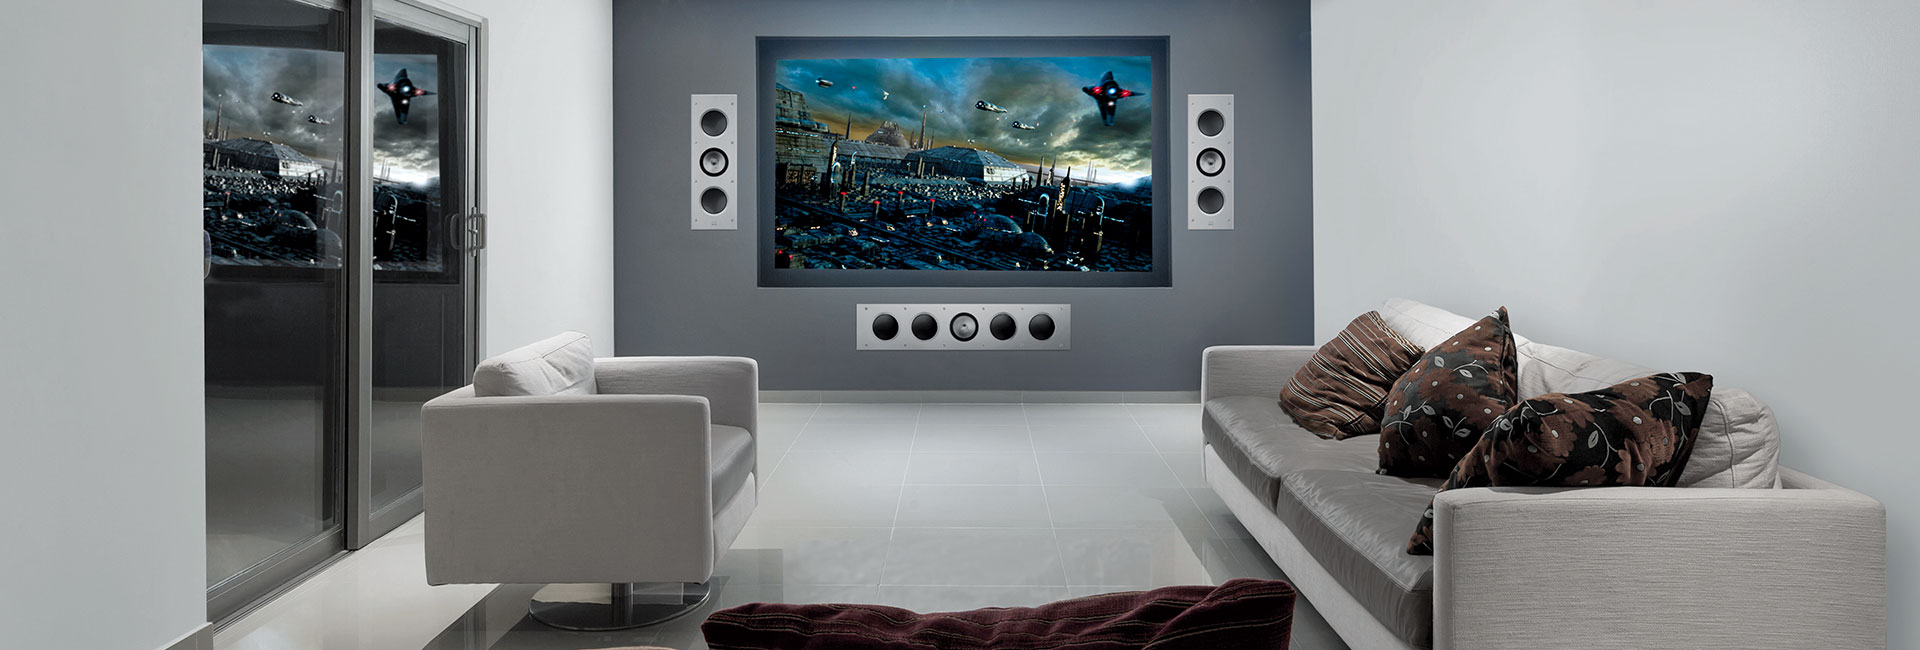 KEF Custom Installation Architectural Accessories